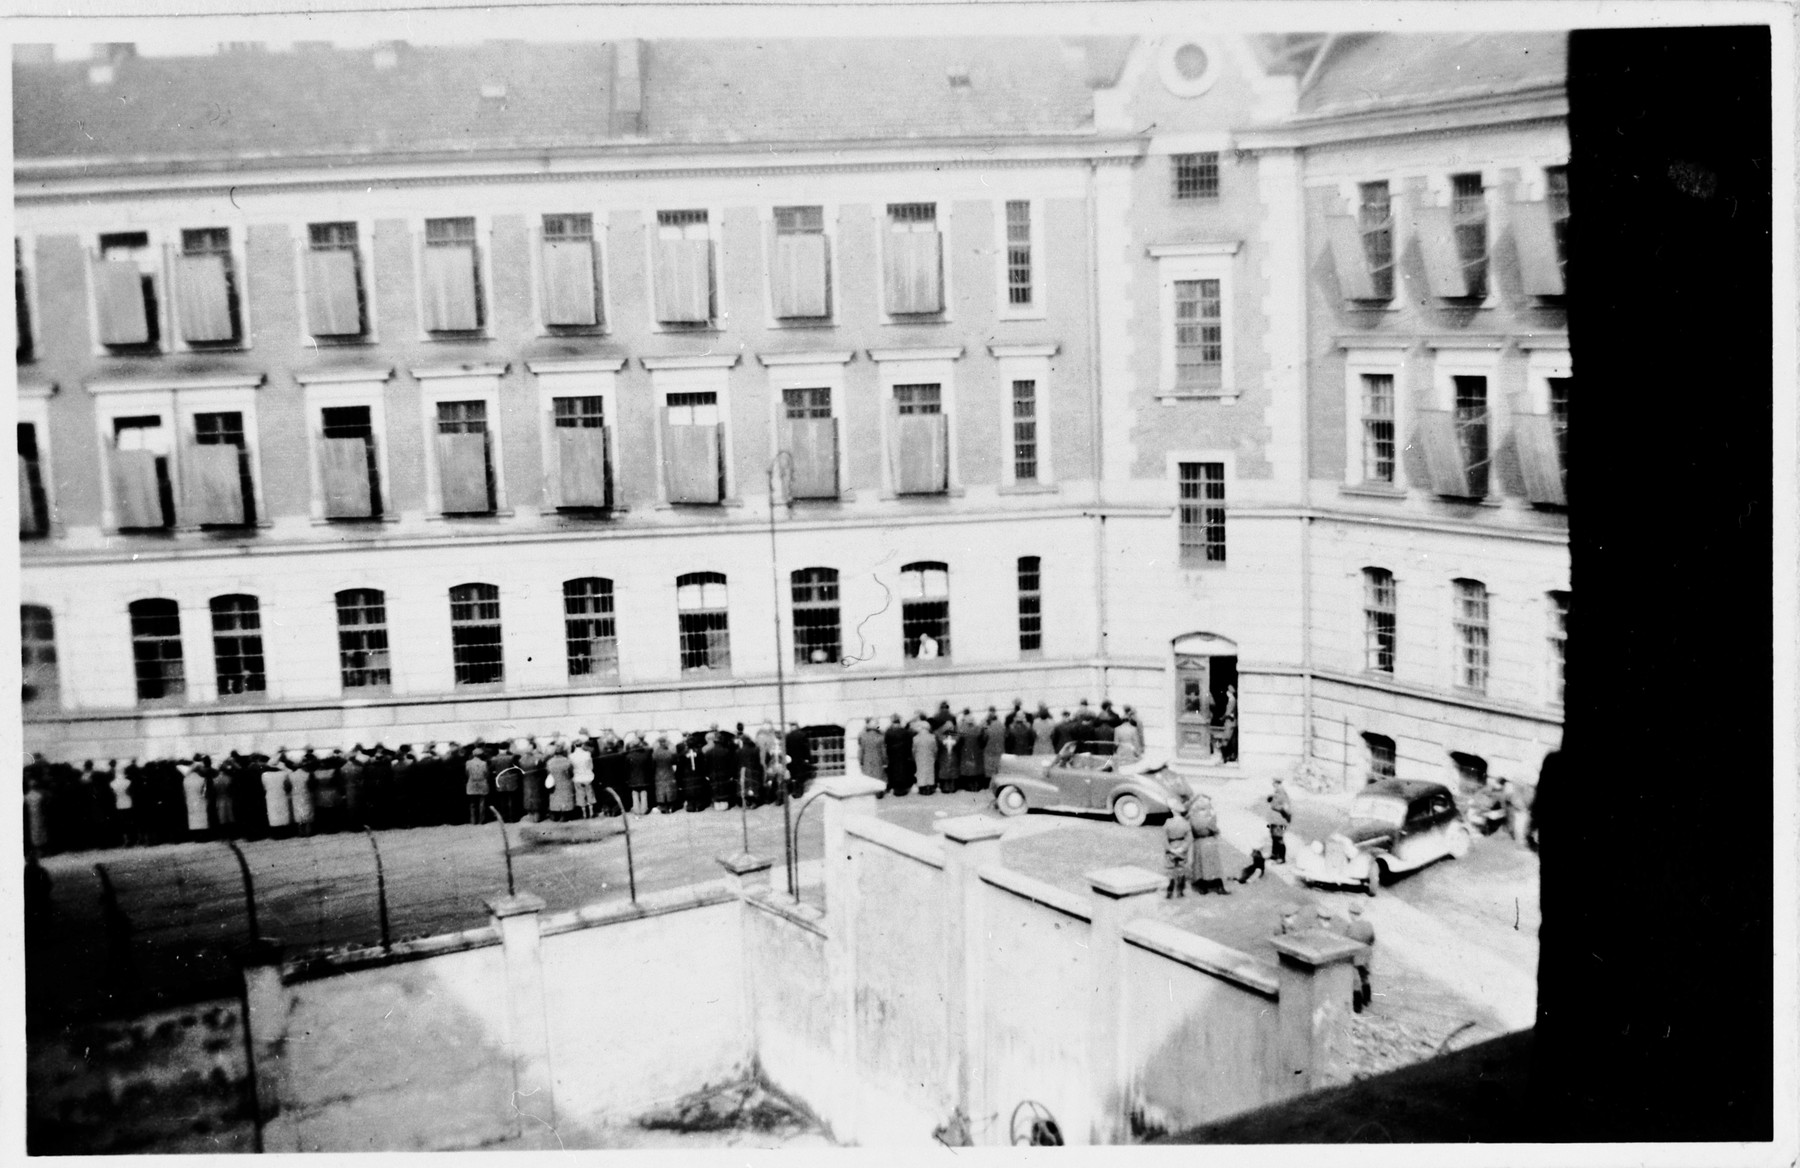 Civilians arrested by German police are held prisoner in the courtyard of the Montelupich prison in Krakow.